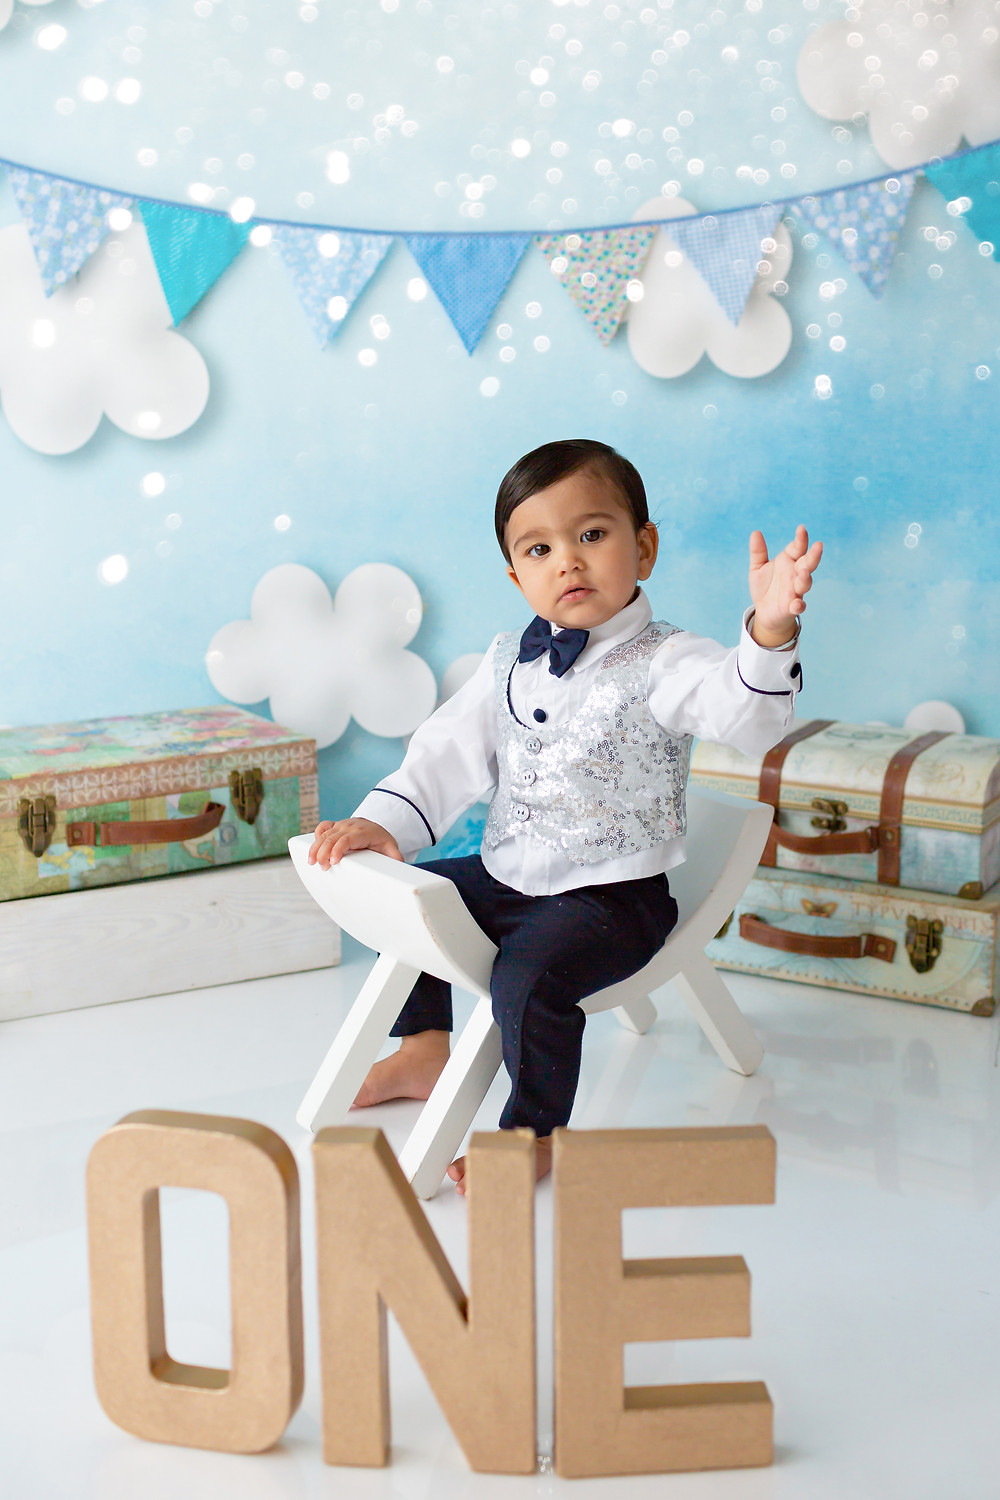 very handsome little boy sitting on his white stool waving at the camera! he is turning one!